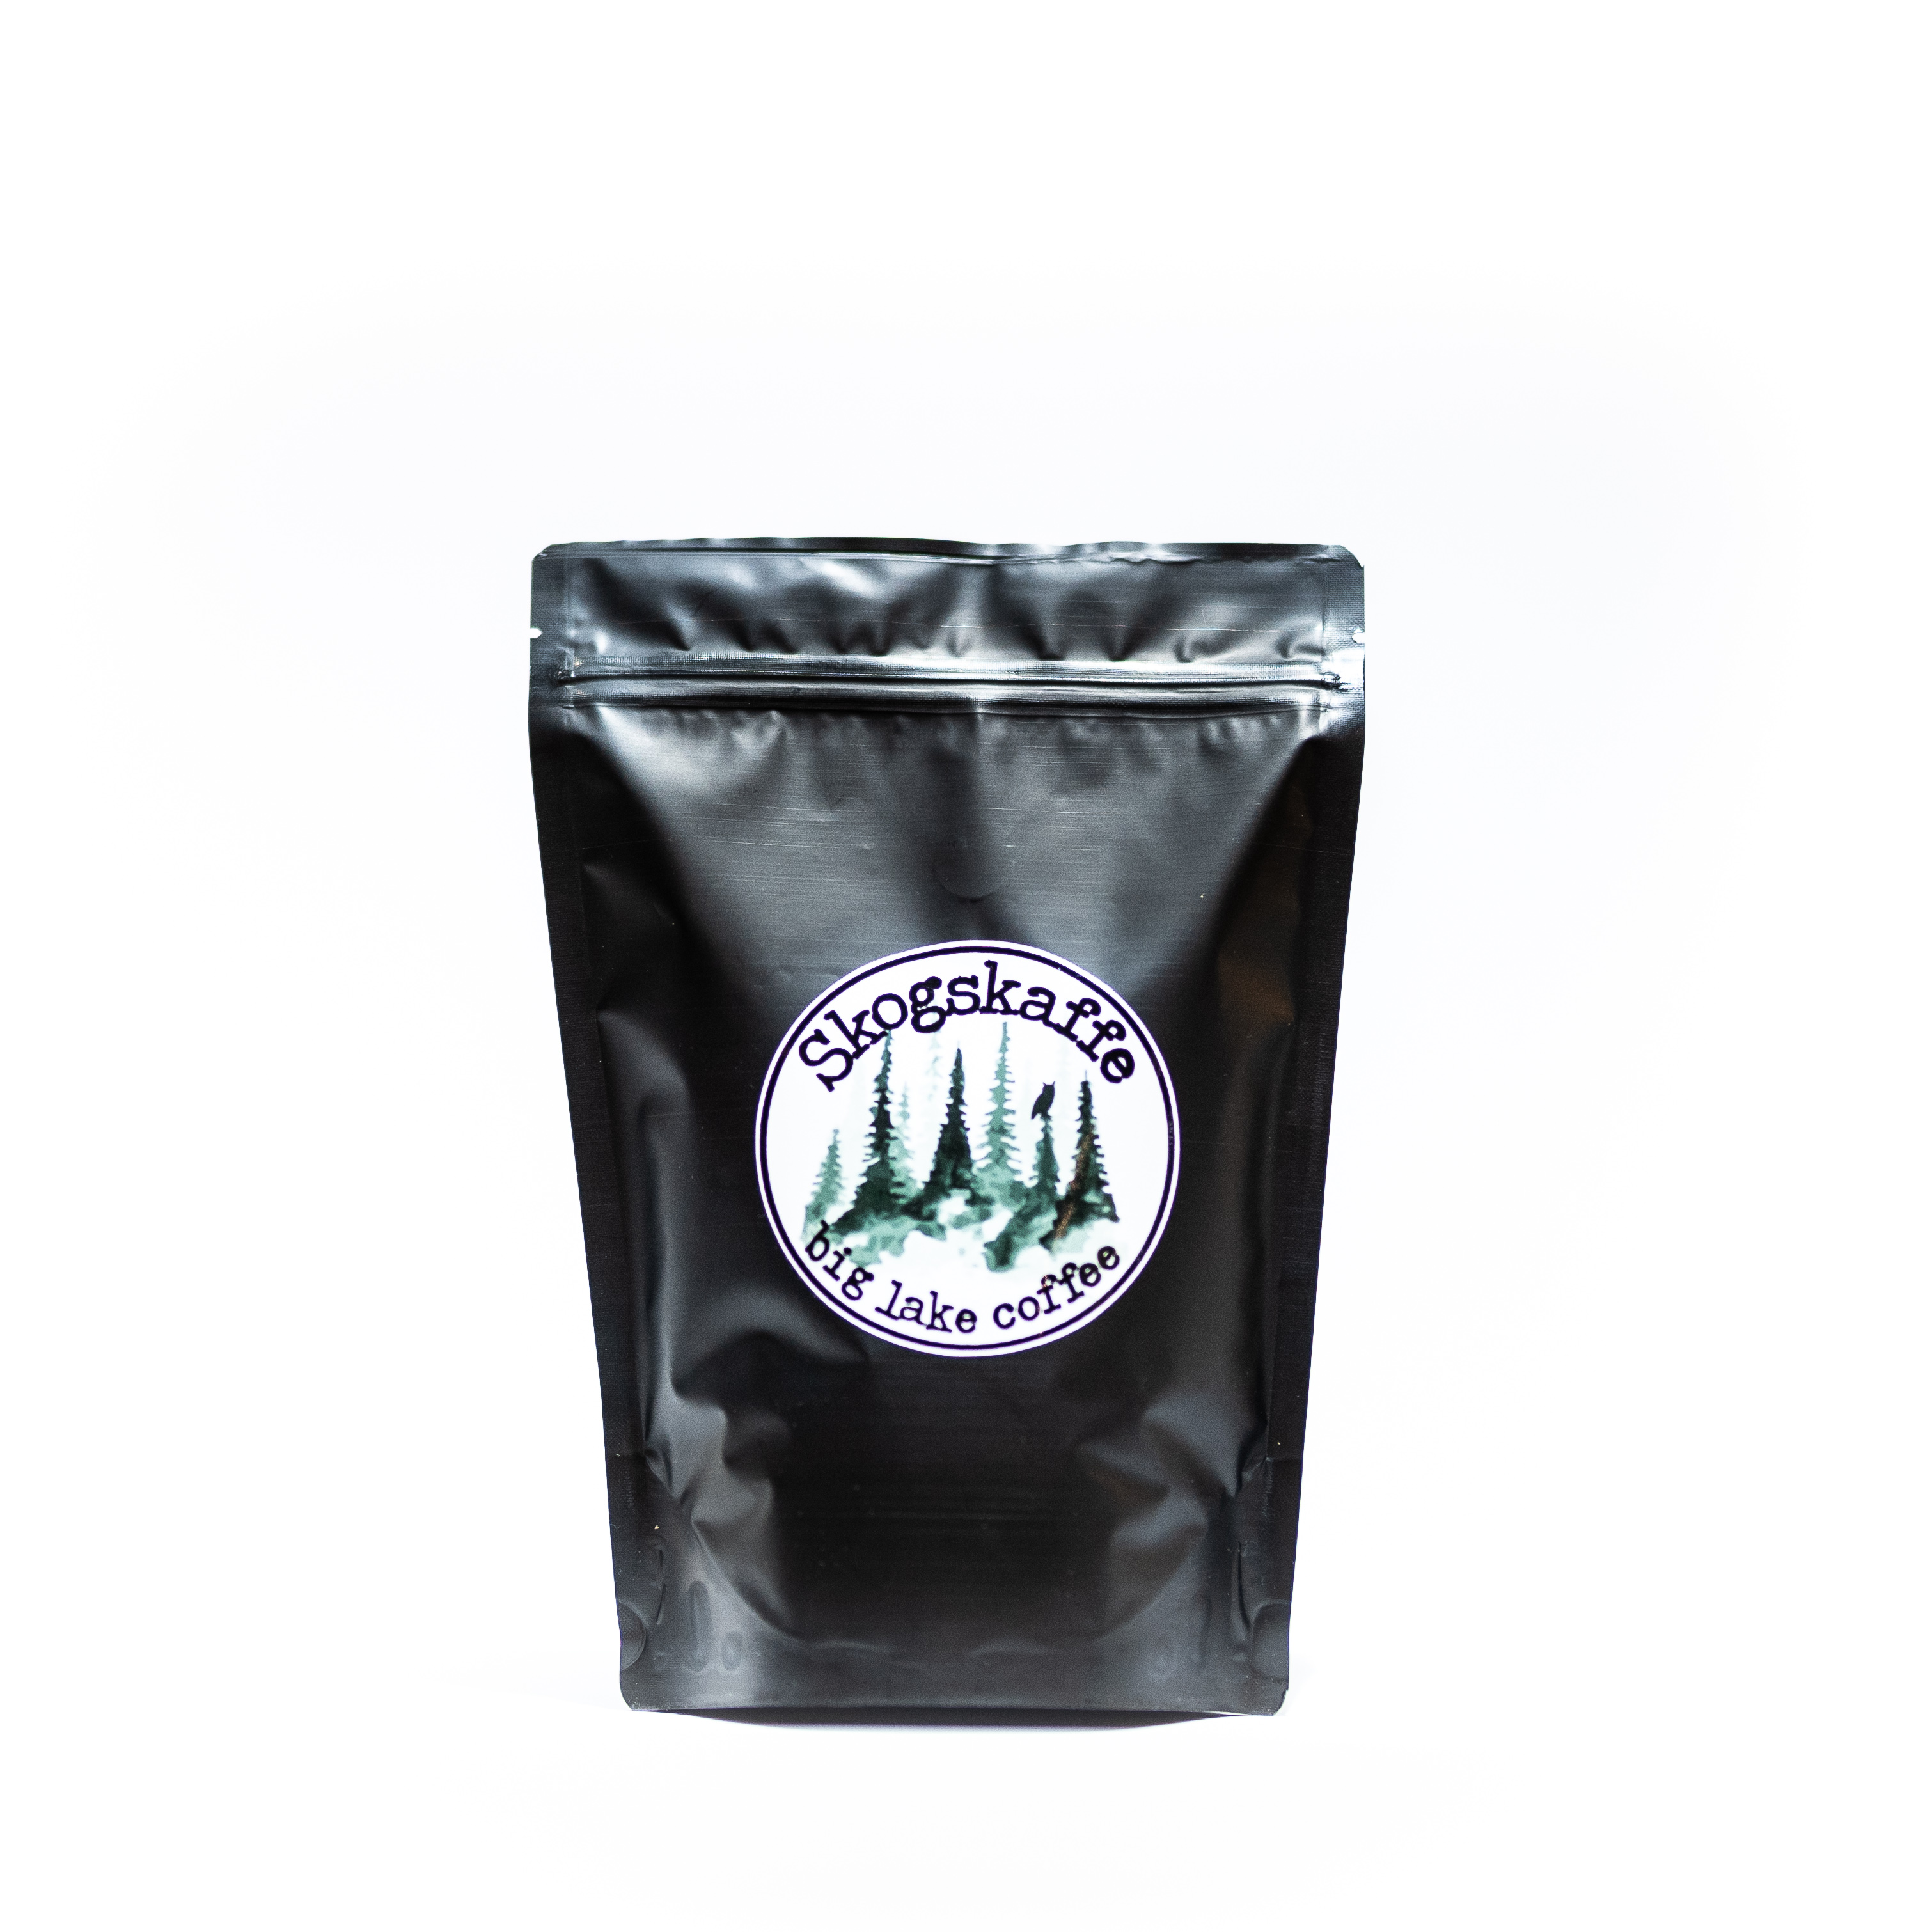 Skogskaffe: Artisan Forest coffee